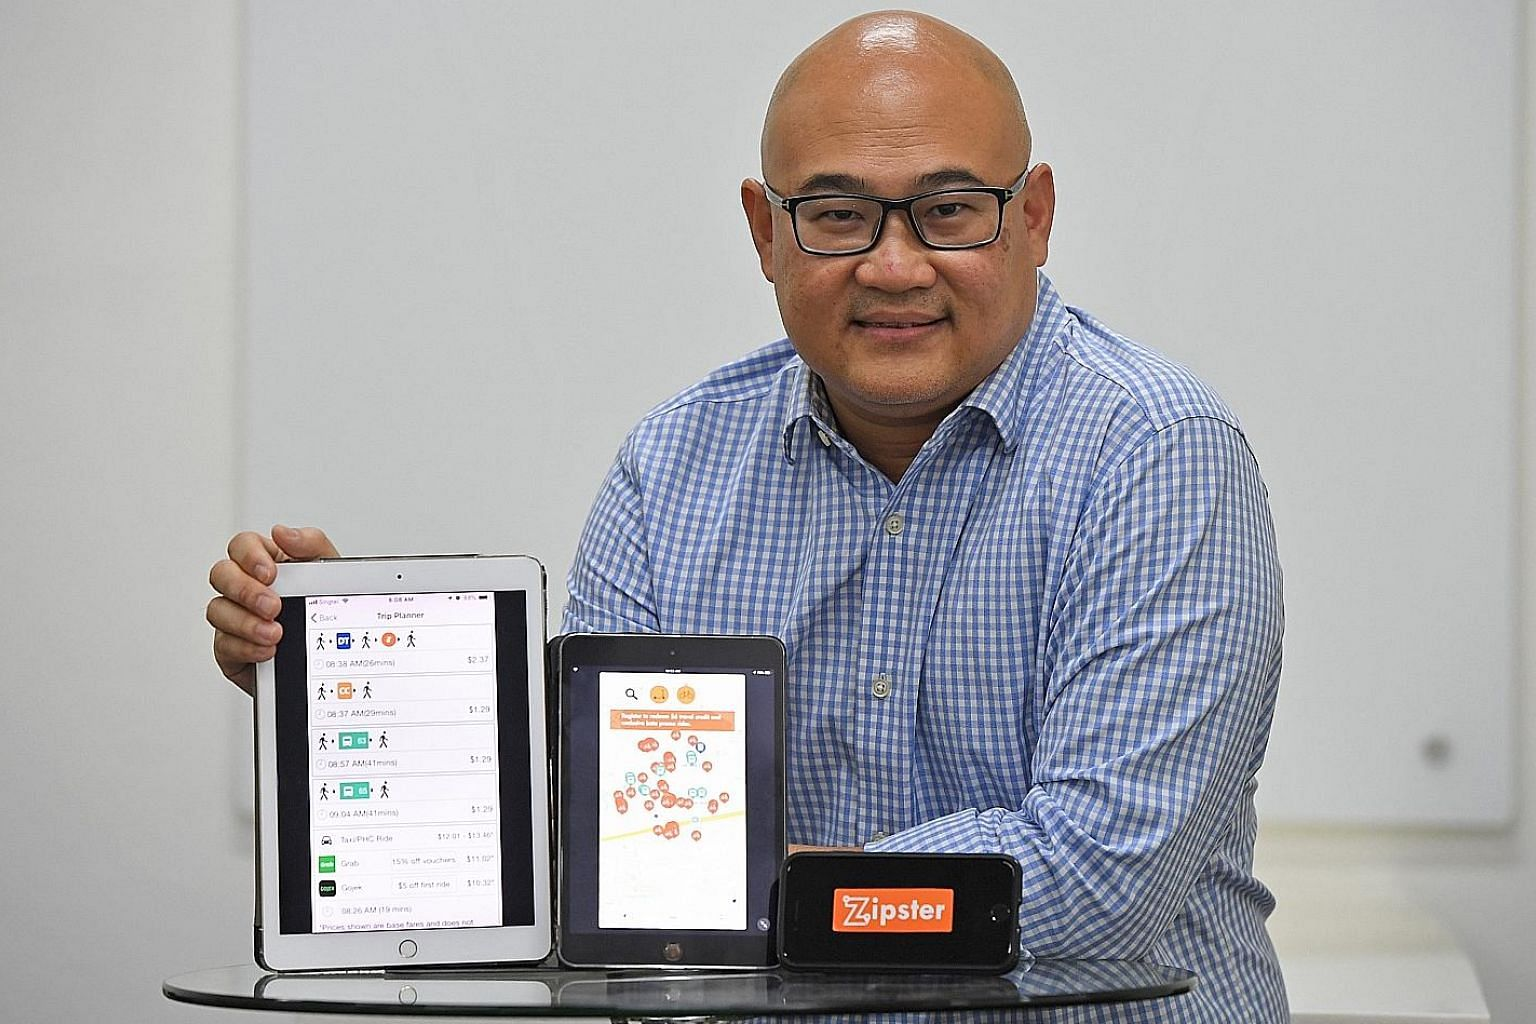 Mr Colin Lim, CEO of mobilityX, says the SMRT-backed app Zipster features an integrated mobile wallet that can be used for rides across transport services.